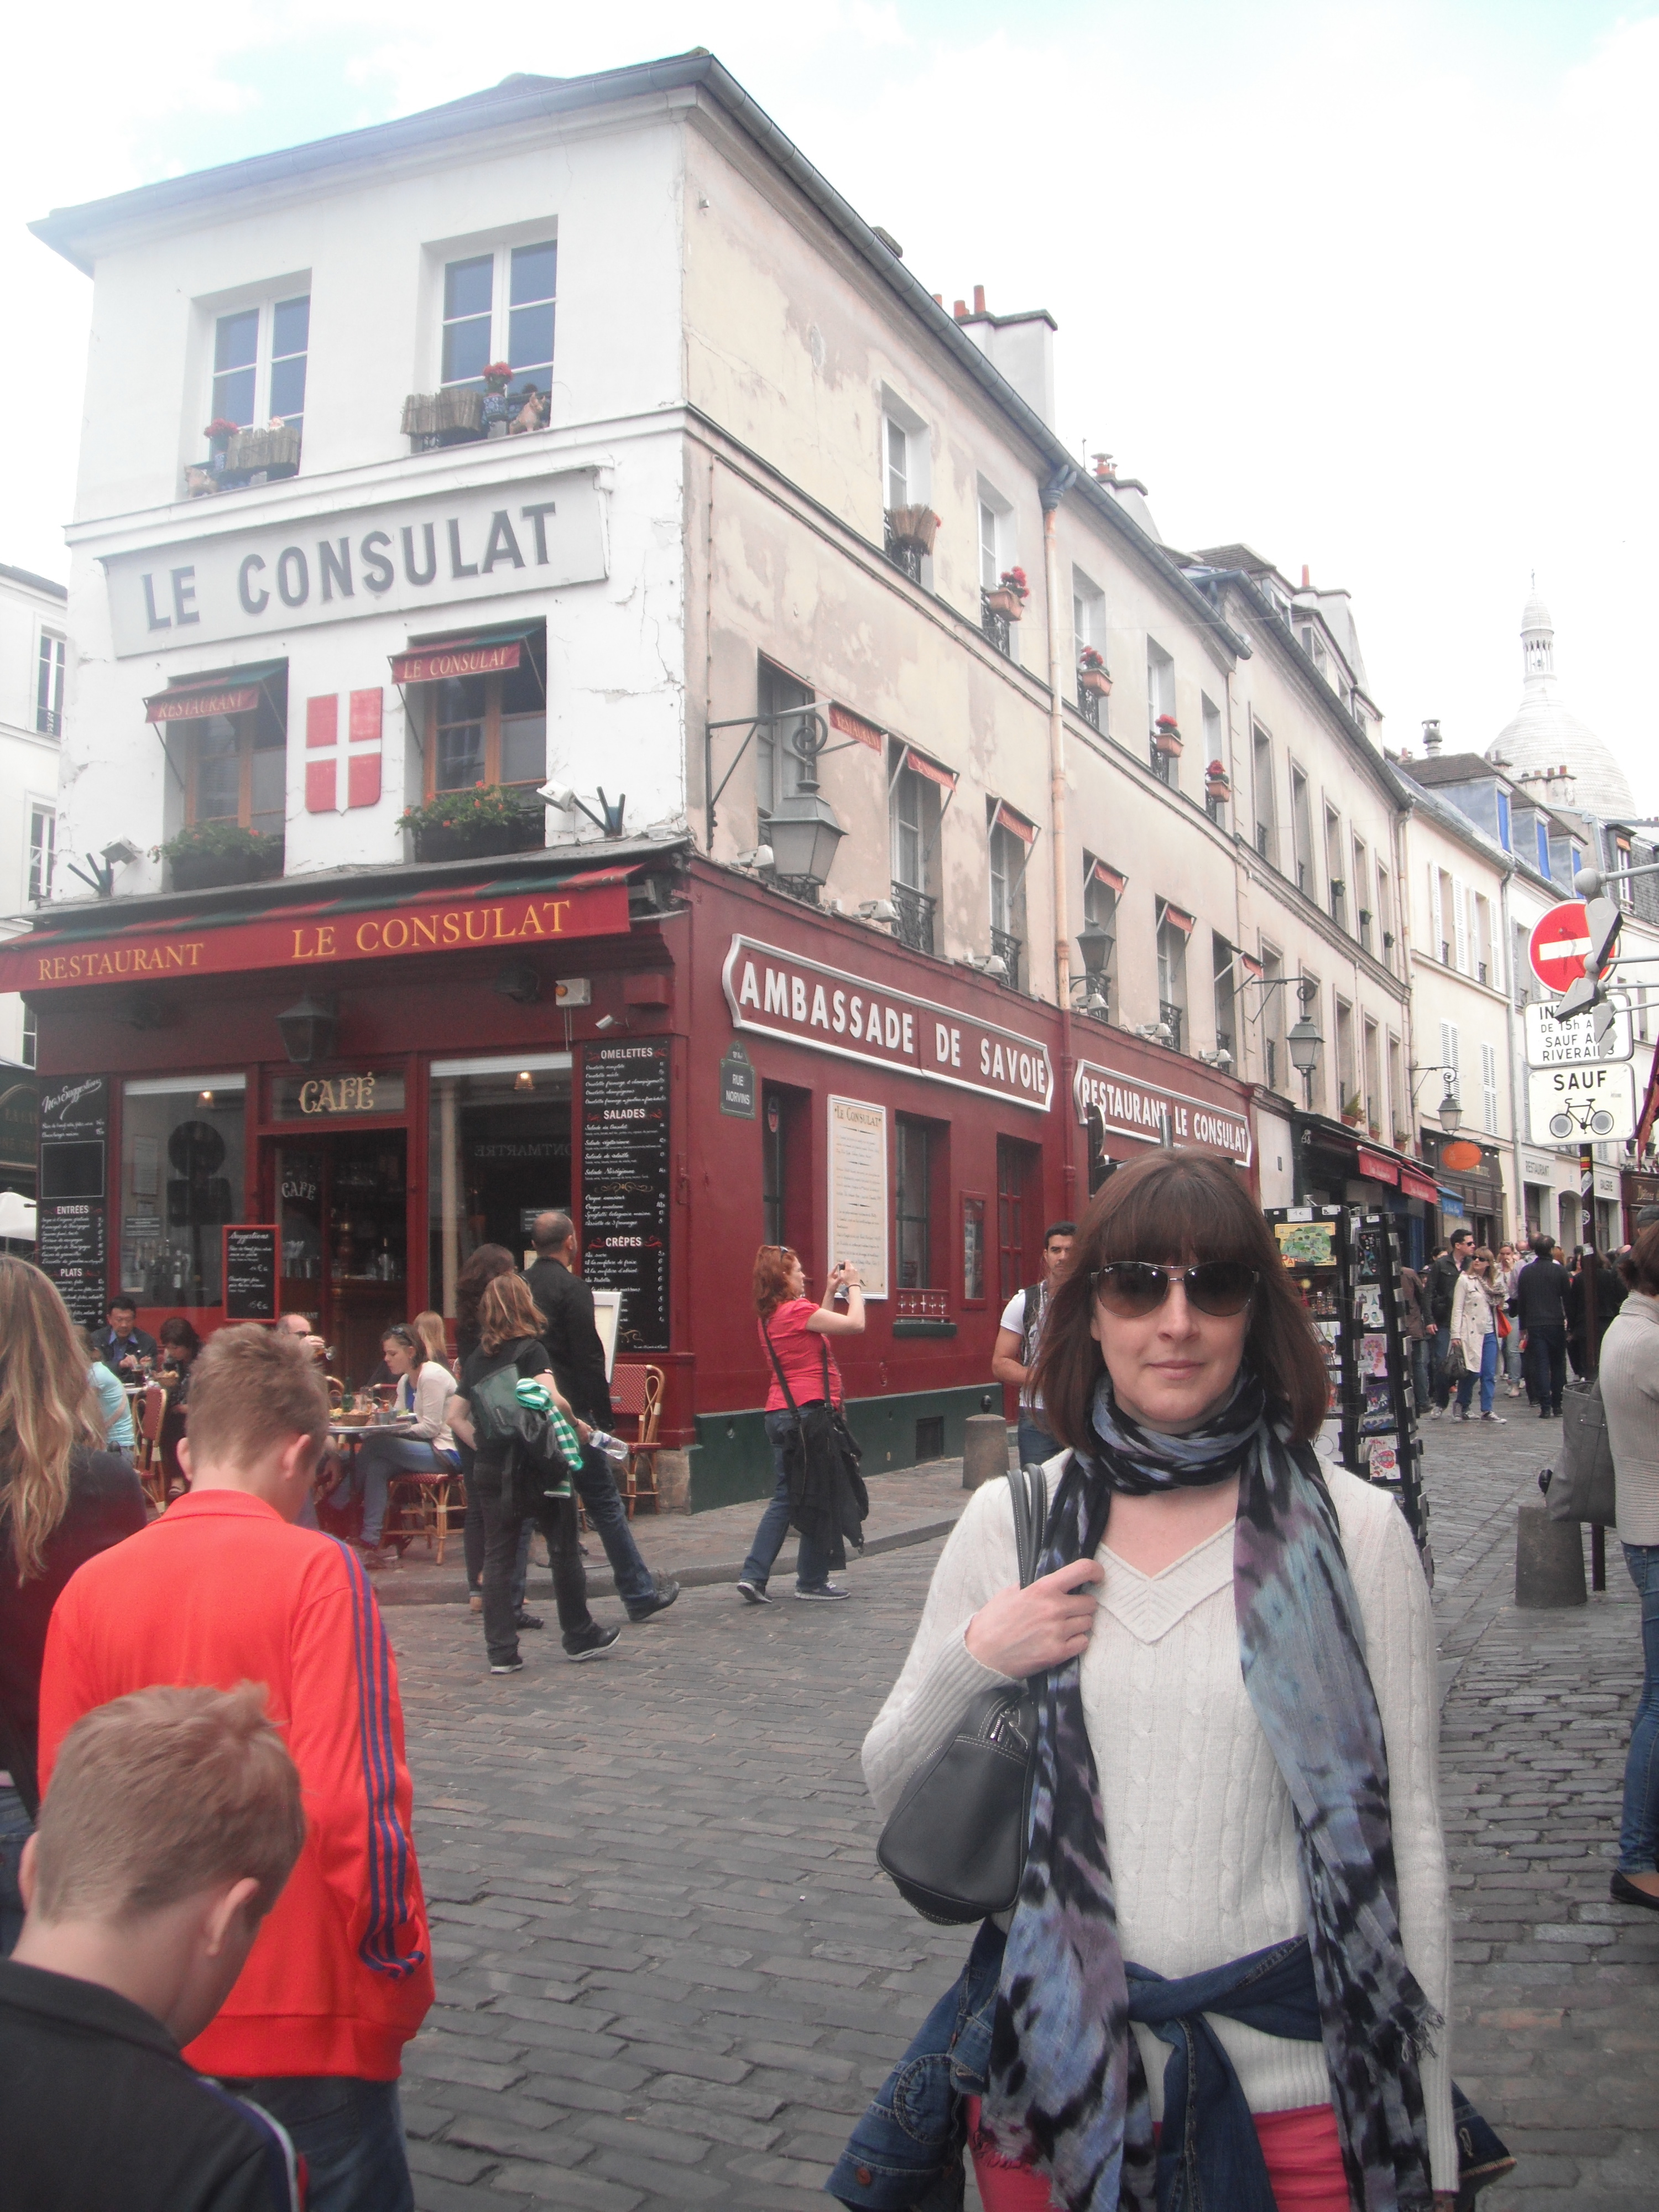 This is me in Montmartre where the Sacre Coeur church is. Notice how I'm clutching my bag. The area is well known for pickpockets!